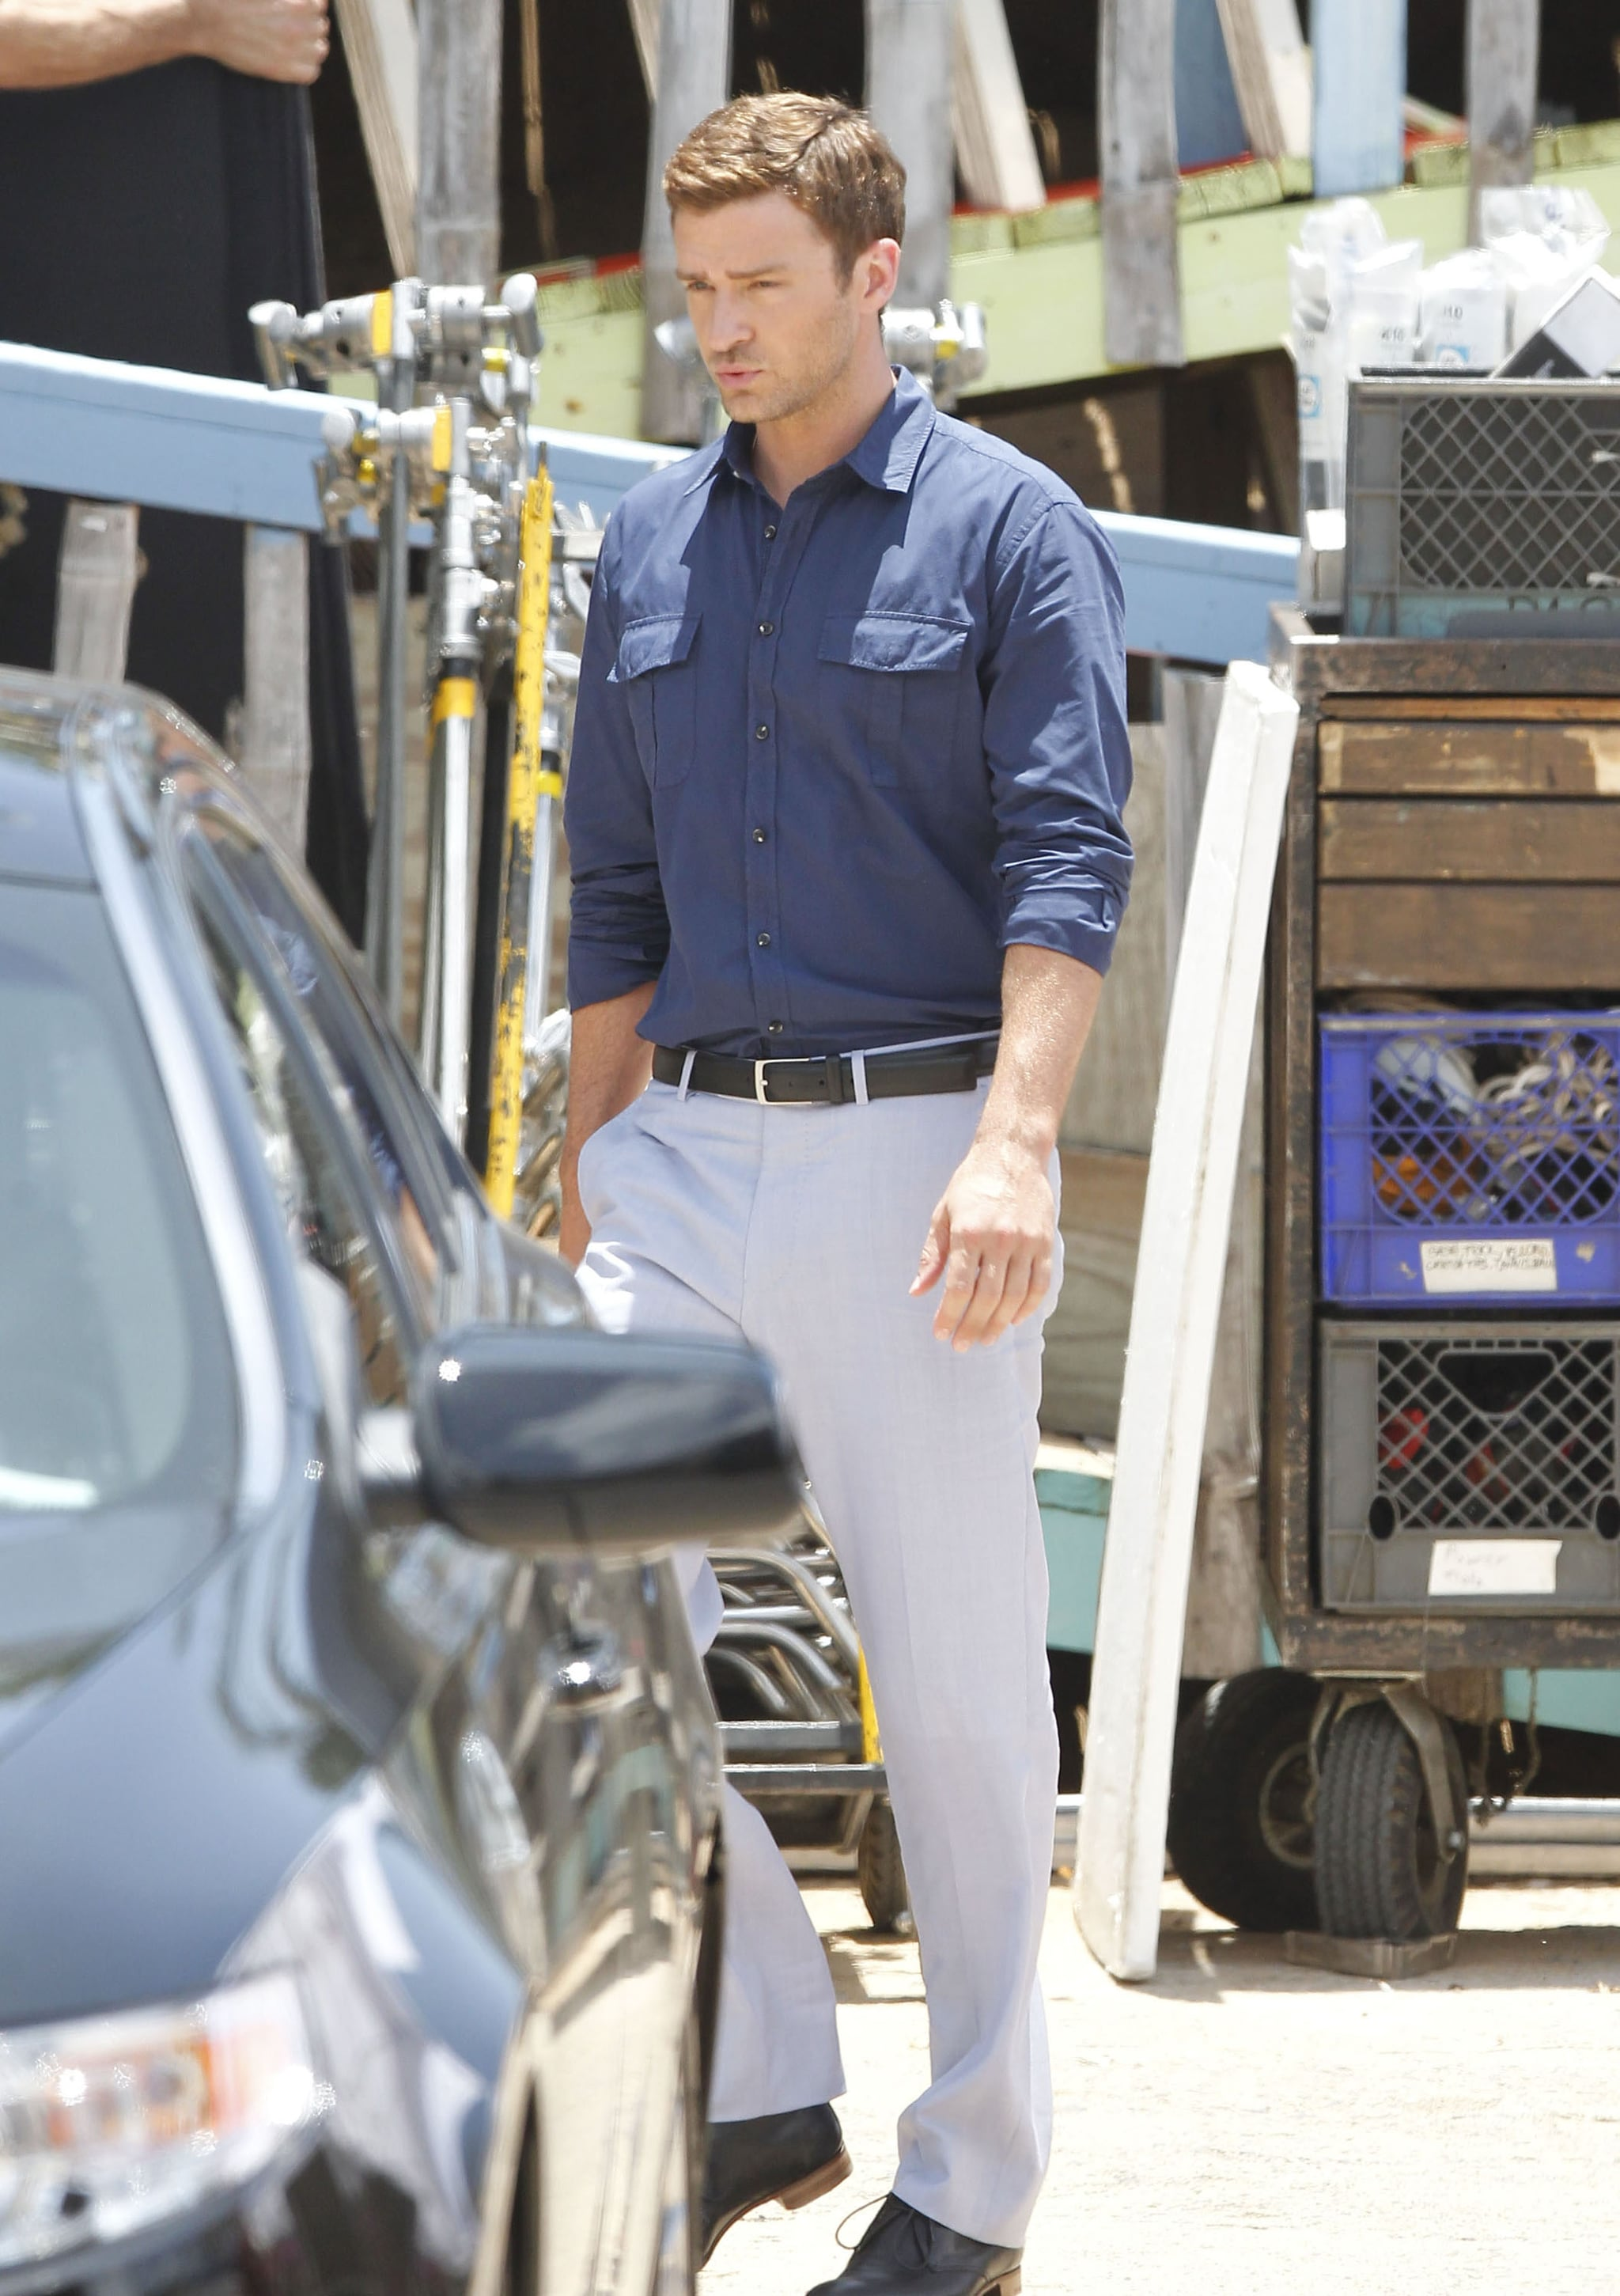 Justin Timberlake looked good on the set of Runner, Runner in Puerto Rico.